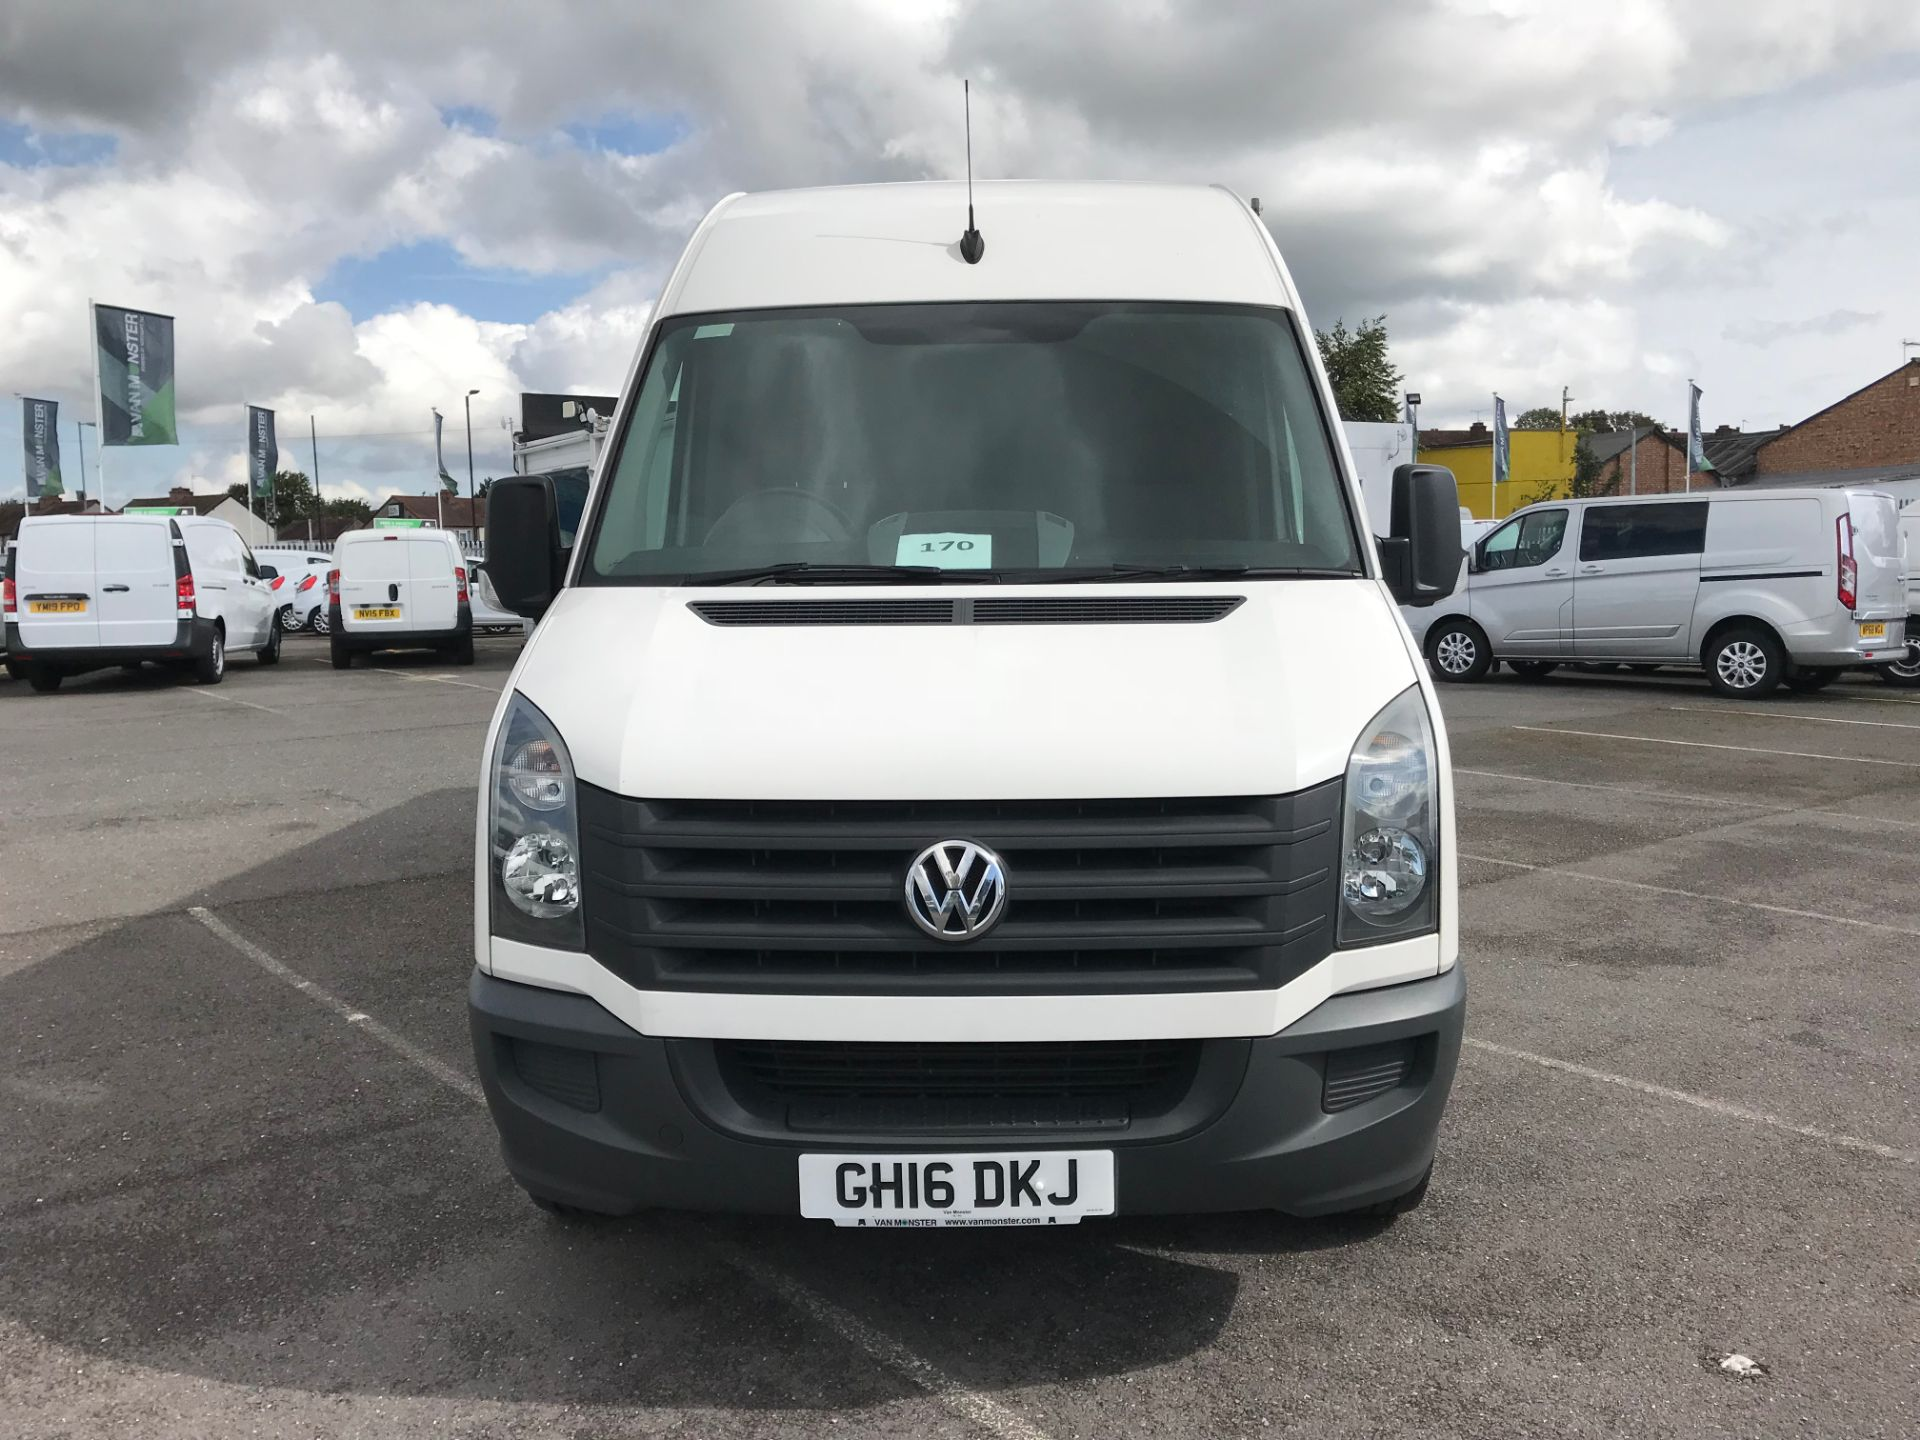 2016 Volkswagen Crafter   CR35 LWB 2.0 TDI 136PS H/R EURO 5 (GH16DKJ) Image 3